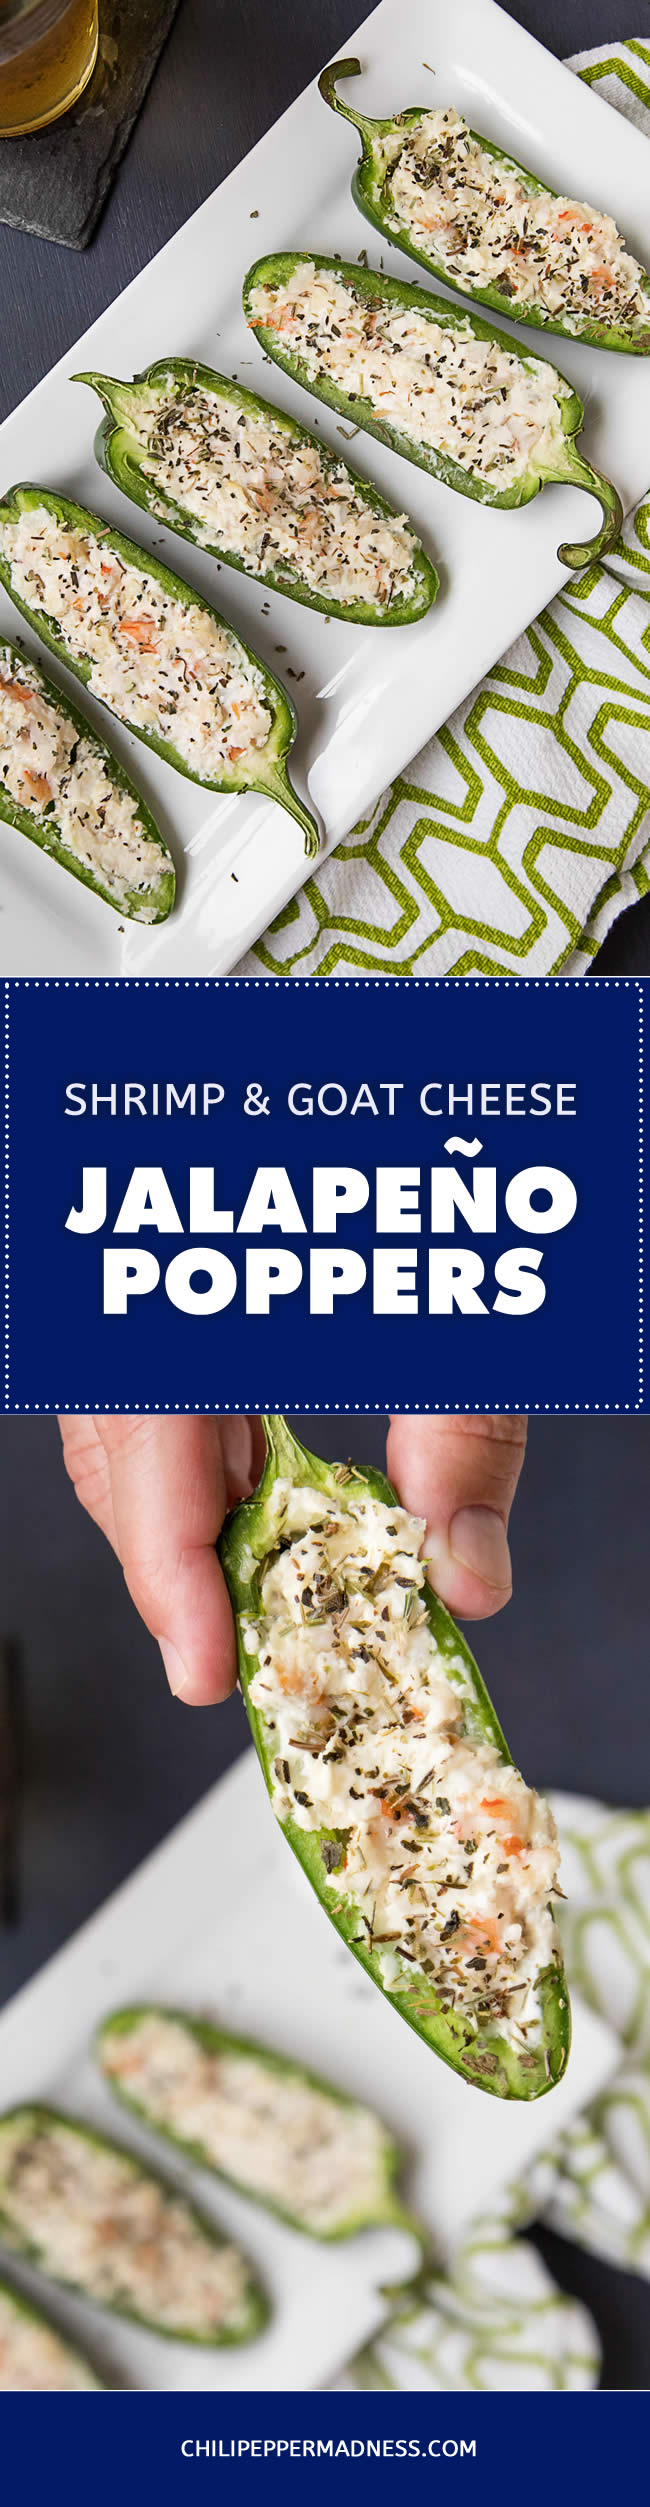 Shrimp and Goat Cheese Jalapeno Poppers - Recipe